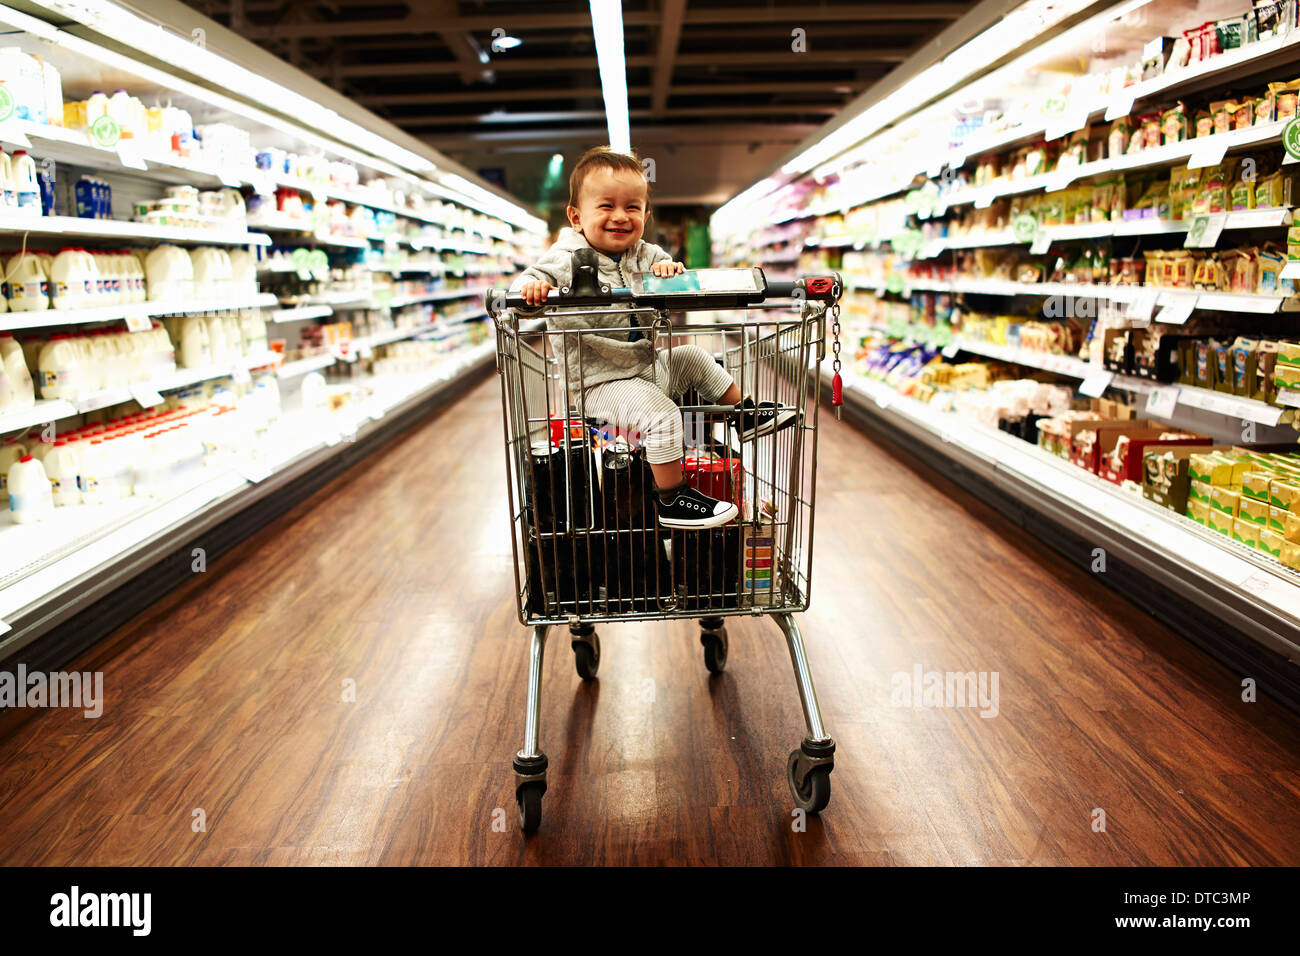 Baby boy sitting in supermarket trolley - Stock Image